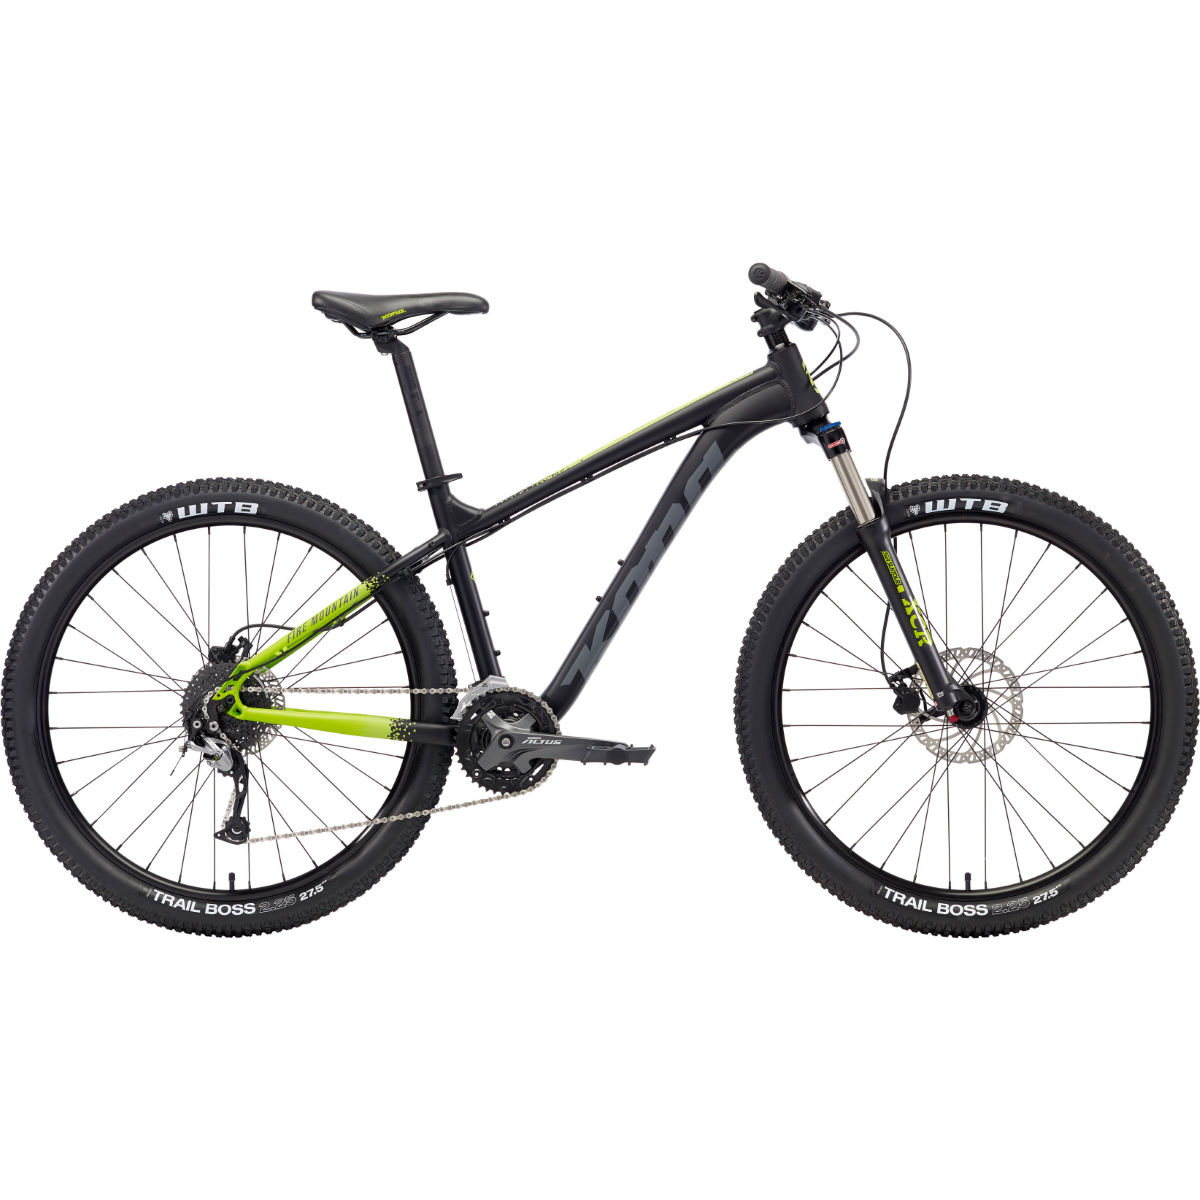 VTT Kona Fire Mountain (2018) - Small Stock Bike Noir